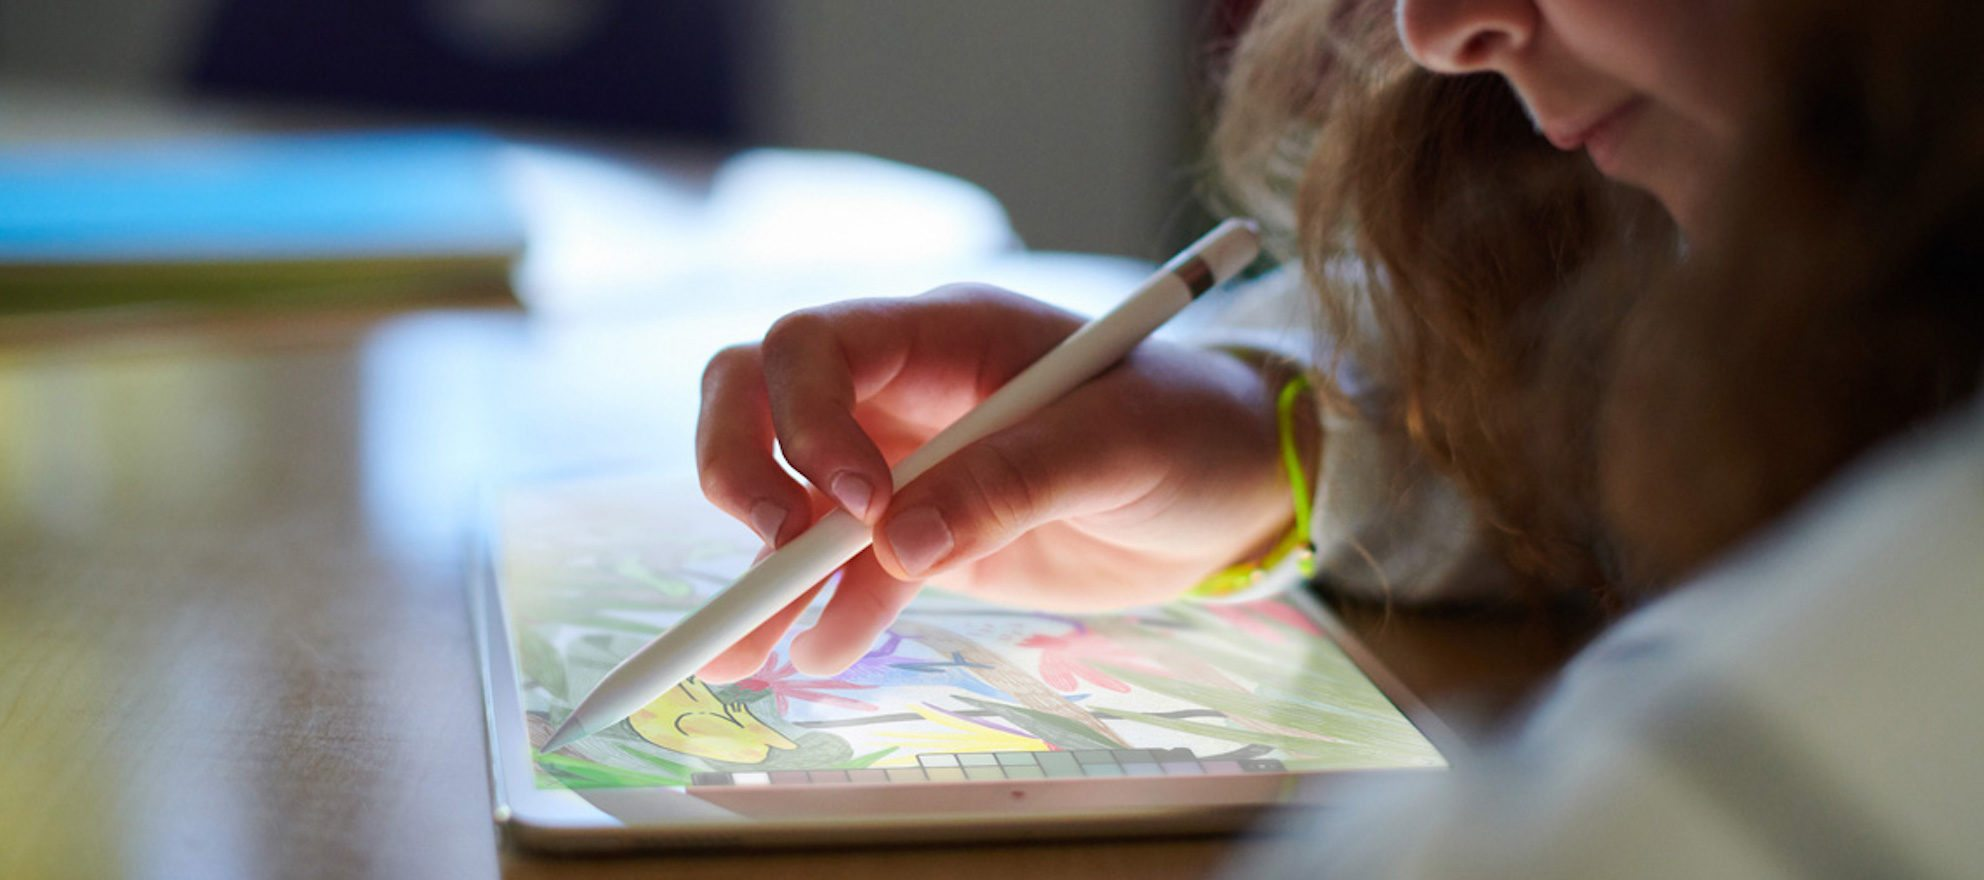 Apple unveils new $329 iPad with Pencil support